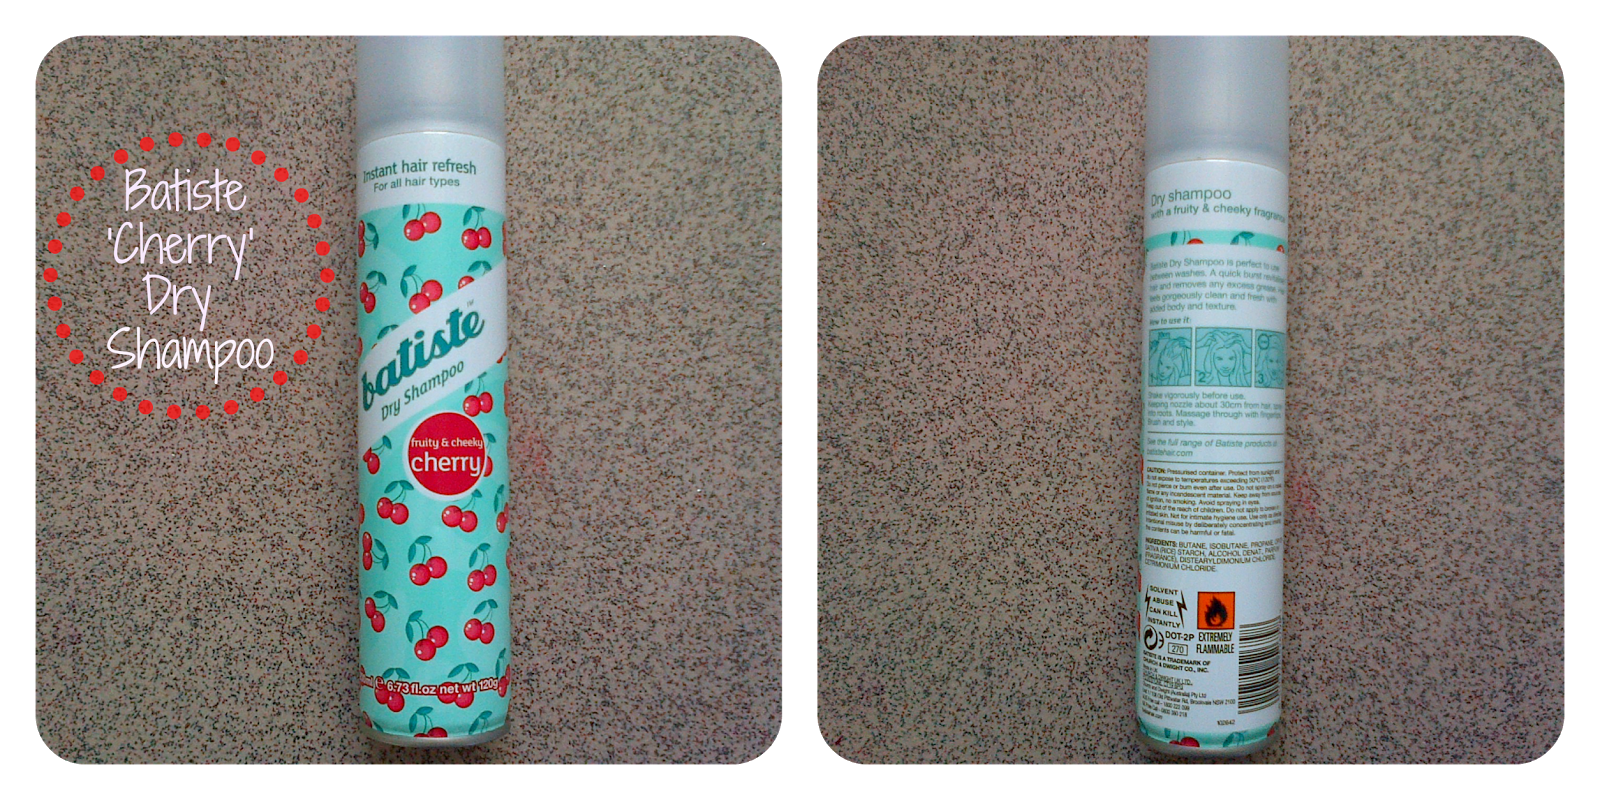 Batiste Fruity and Cheeky Cherry Dry Shampoo